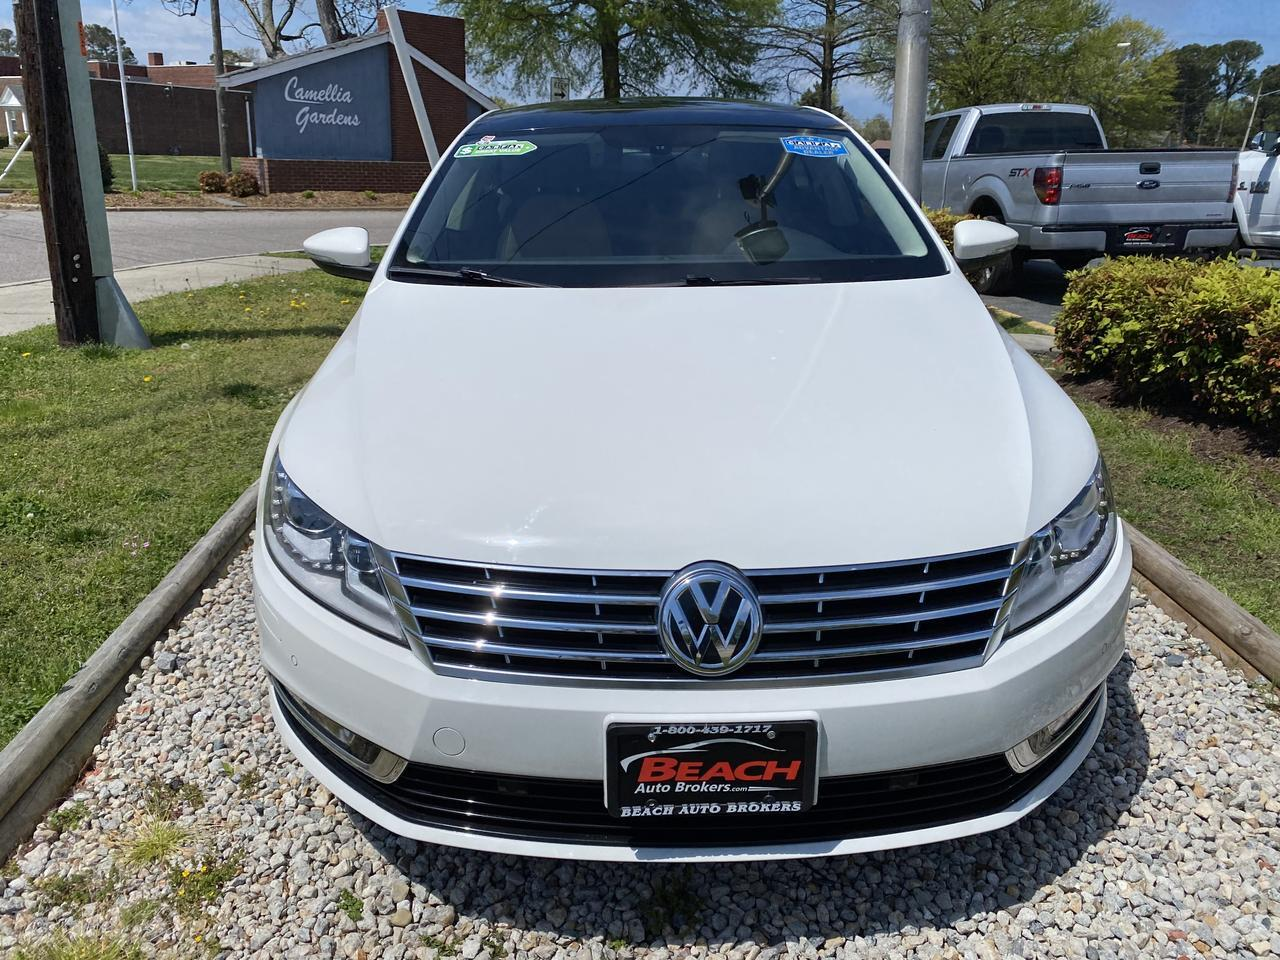 2013 VOLKSWAGEN CC EXECUTIVE, WARRANTY, LEATHER, NAV, SUNROOF, BACKUP CAM, PARKING SENSORS, BLUETOOTH, CLEAN CARFAX! Norfolk VA